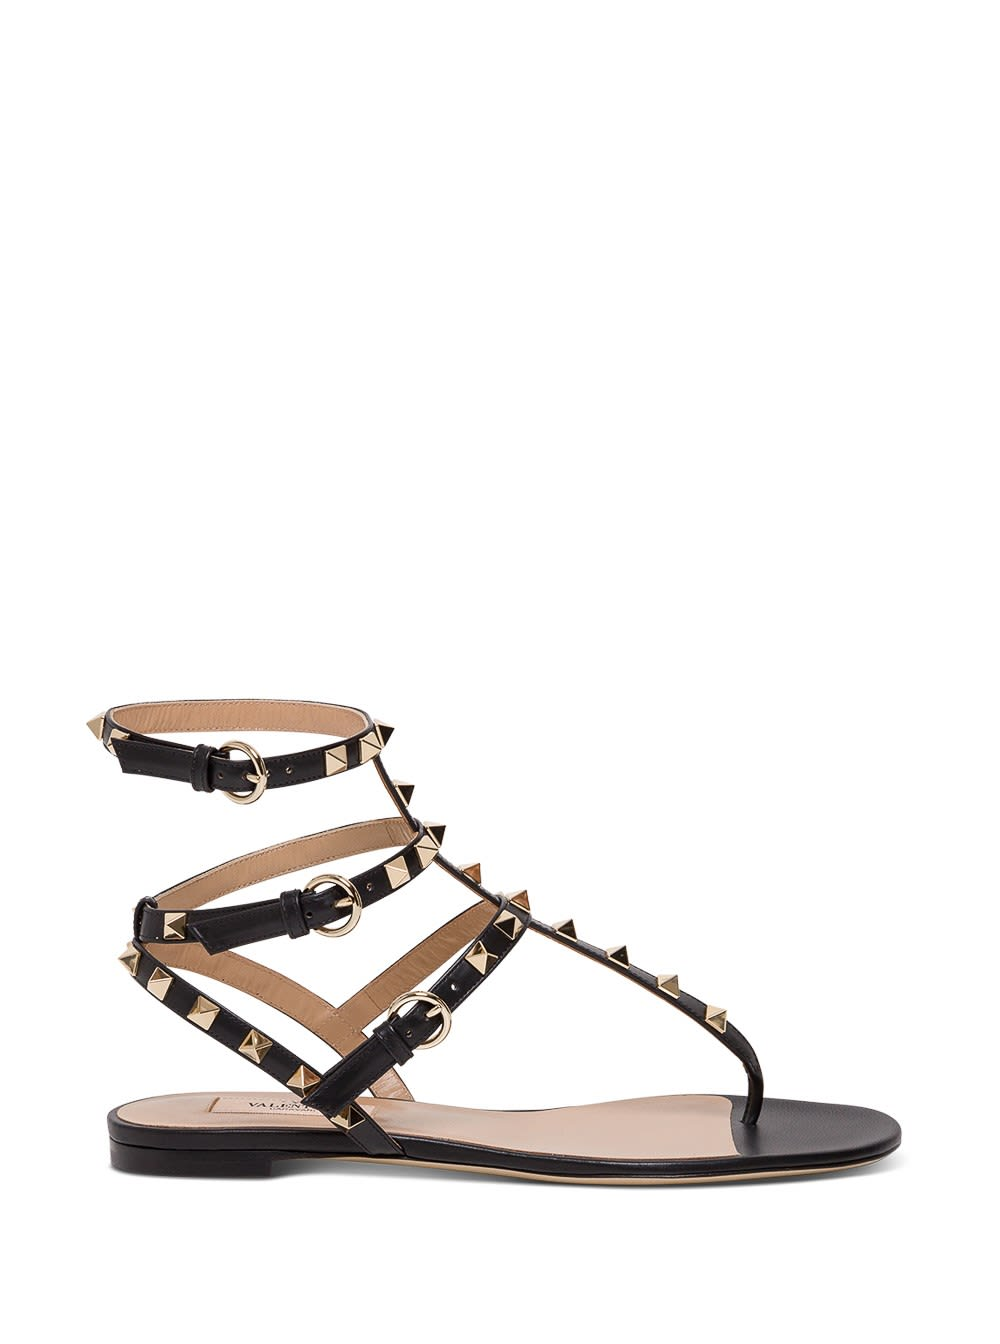 VALENTINO ROCKSTUD SANDALS IN LEATHER